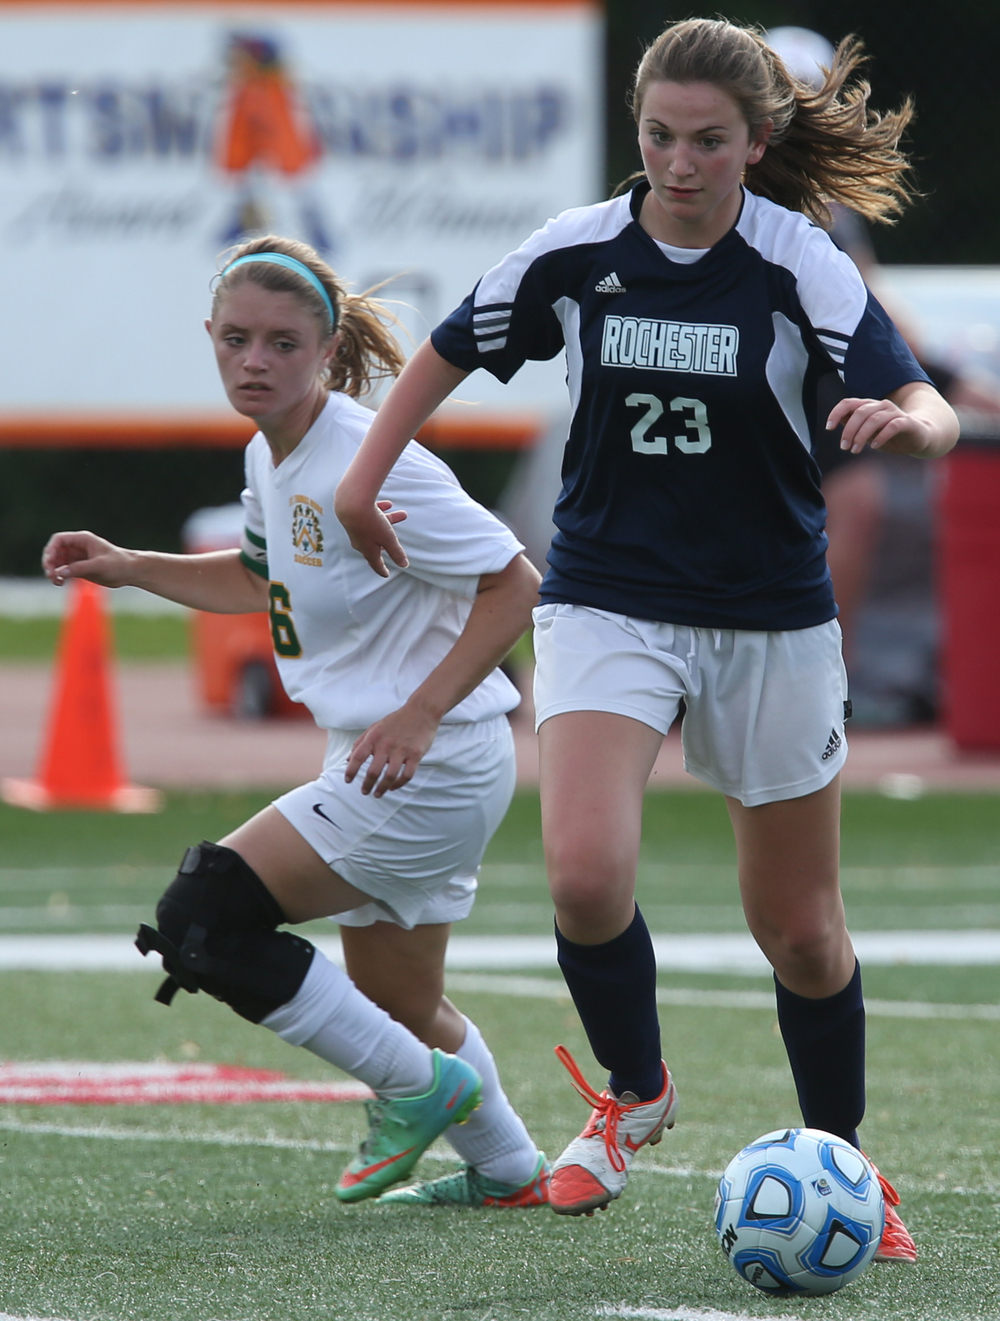 Rochester player Emma Hughes gets the ball past Sabers player Michaela Ward. The Rochester High School Rockets defeated the Champaign St. Thomas More Sabers 3-0 during the state 1A semifinal girls soccer match at North Central College in Naperville on Friday evening, May 29, 2015. David Spencer/The State Journal-Register